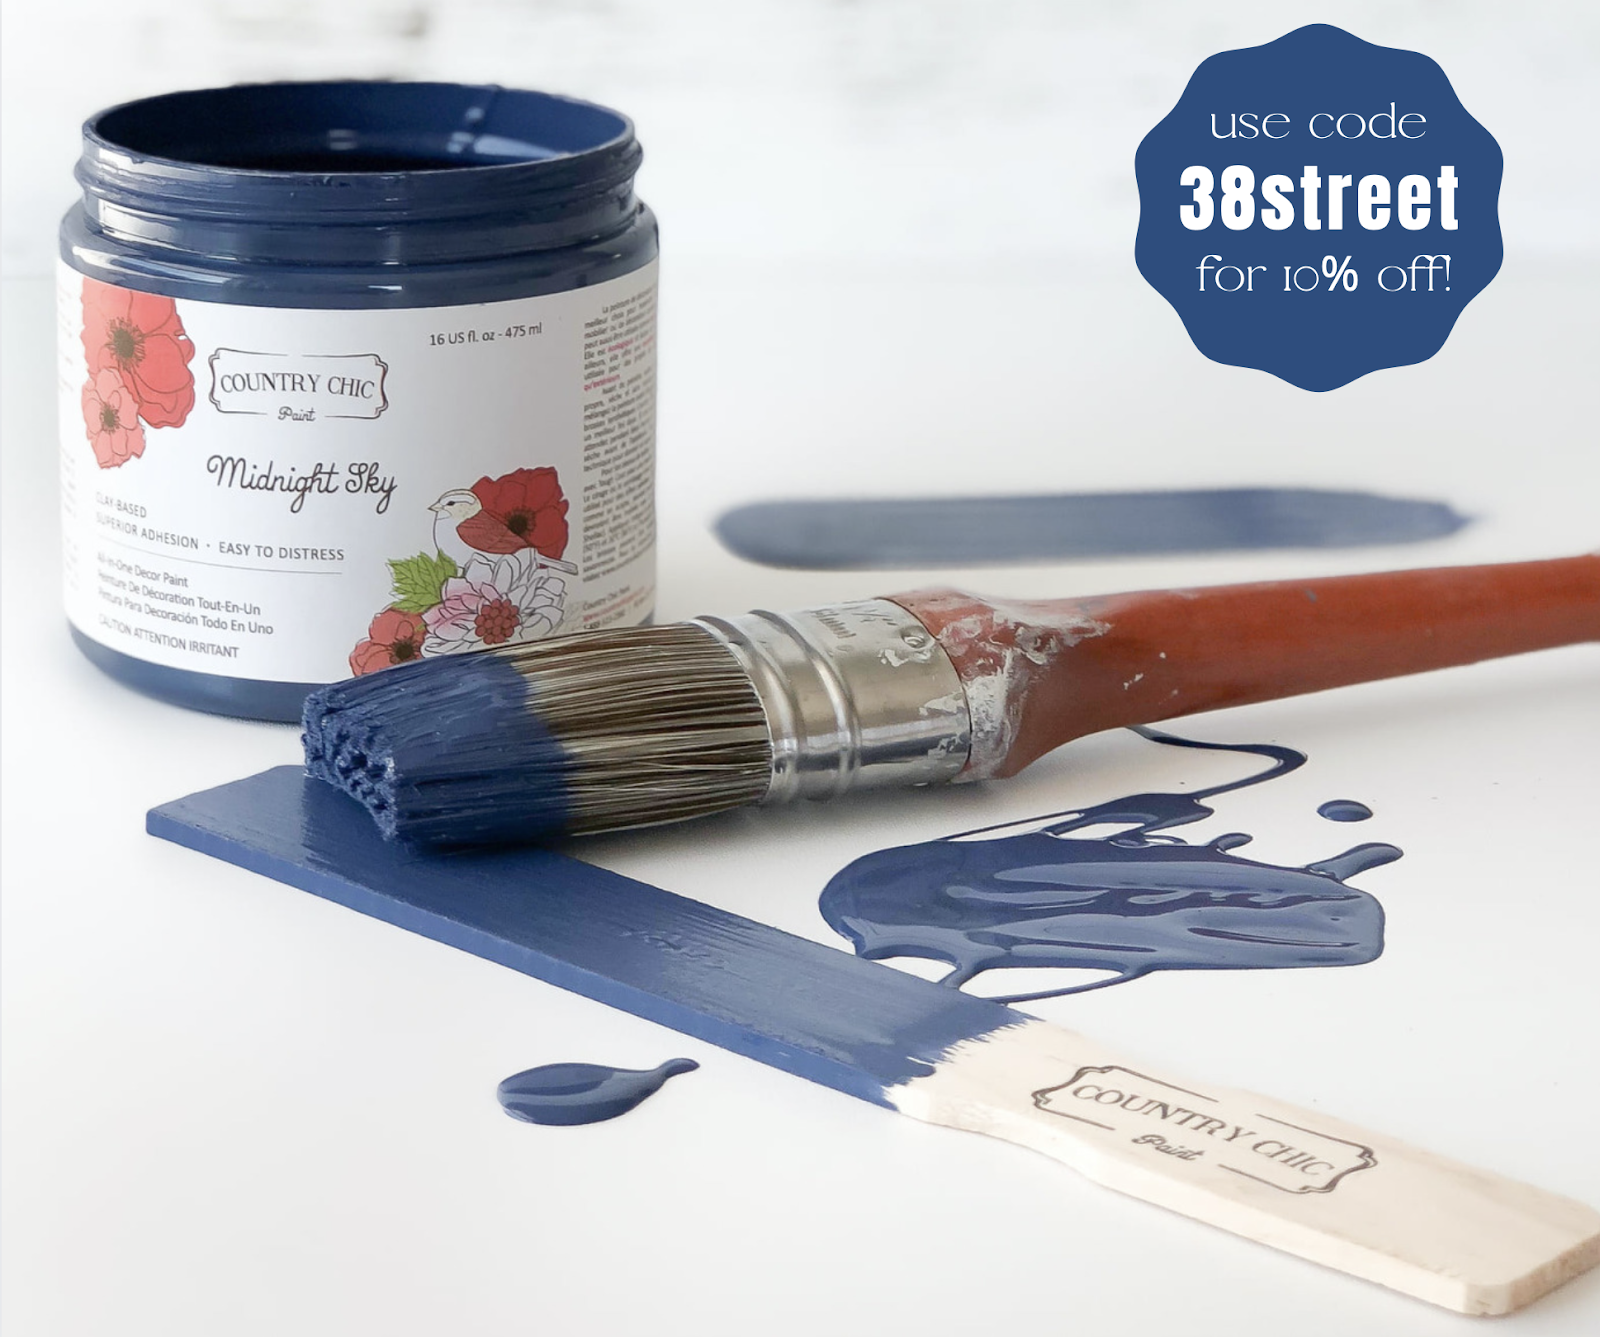 coupon code, midnight sky paint color, country chic paint, furniture paint